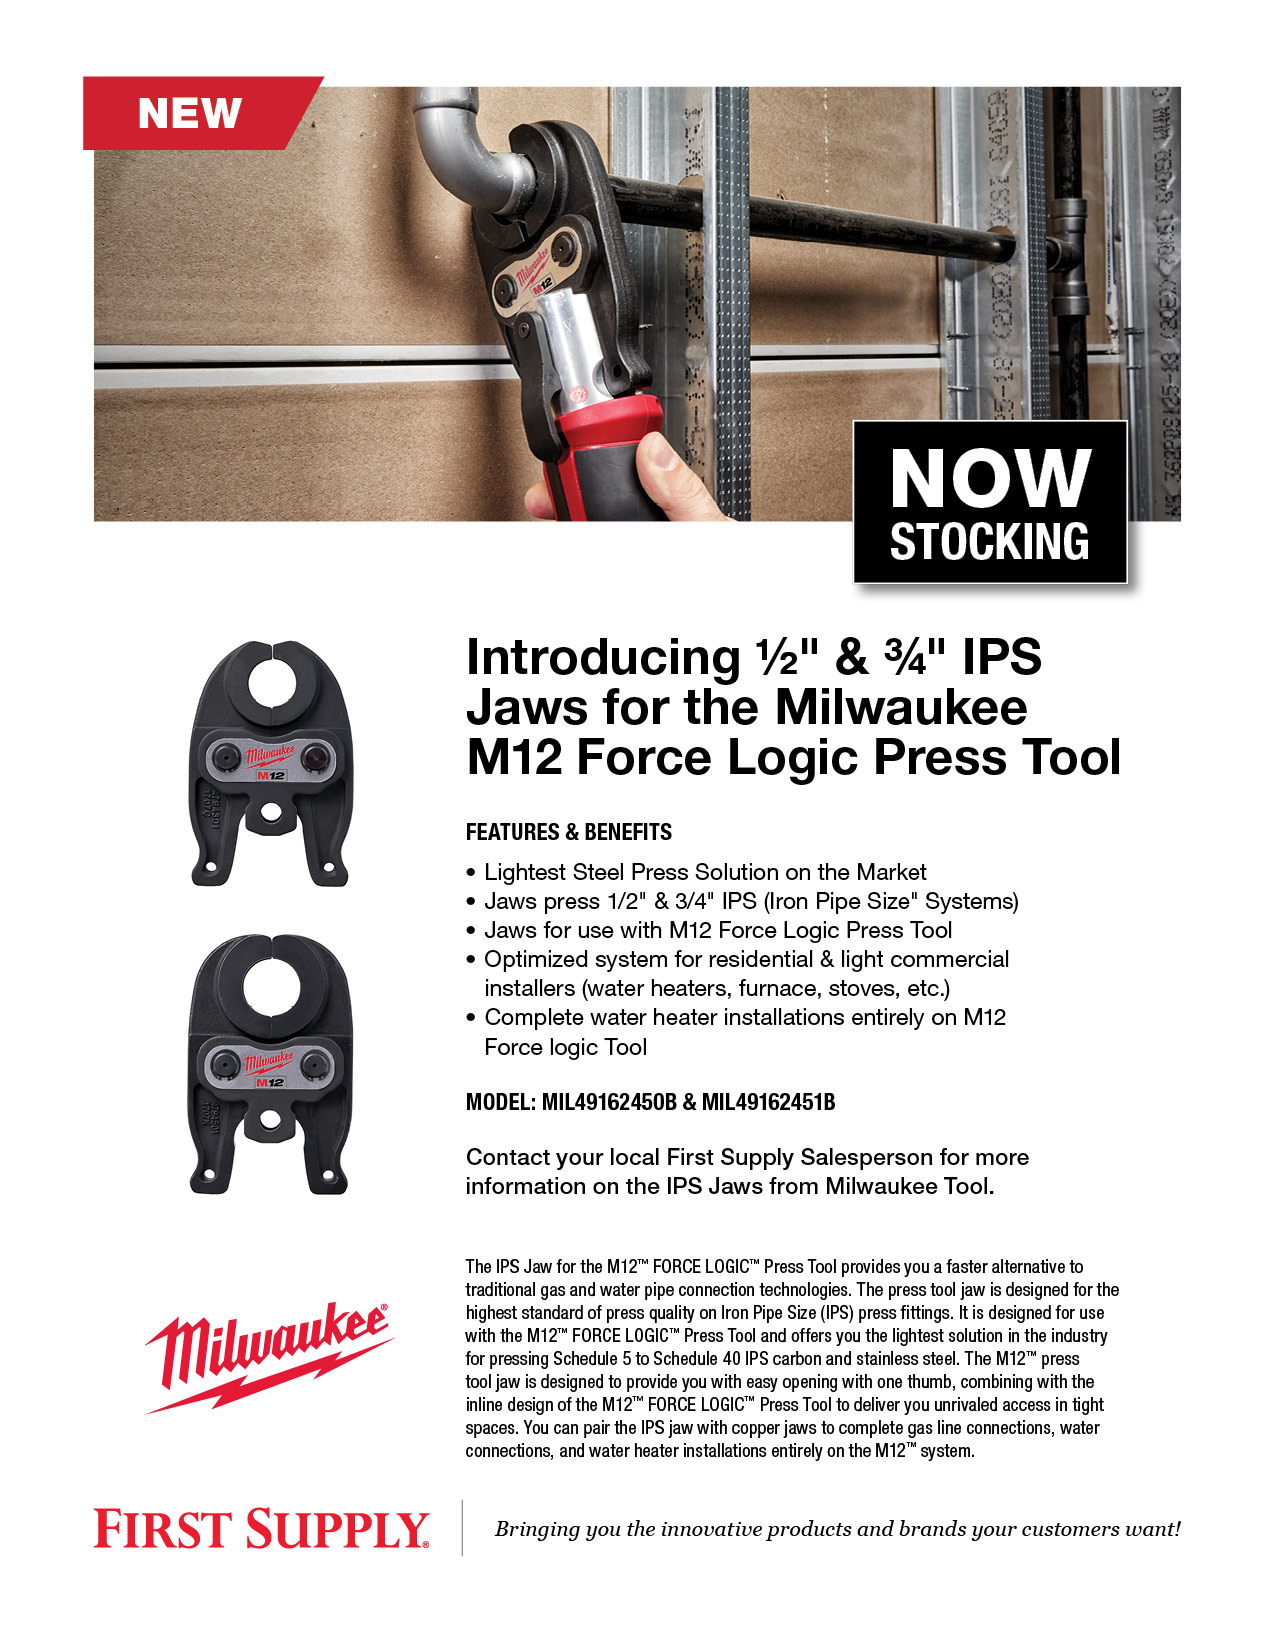 Introducing 1/2 in. and 3/4 in. IPS Jaws for the Milwaukee M12 Force Logic Press Tool